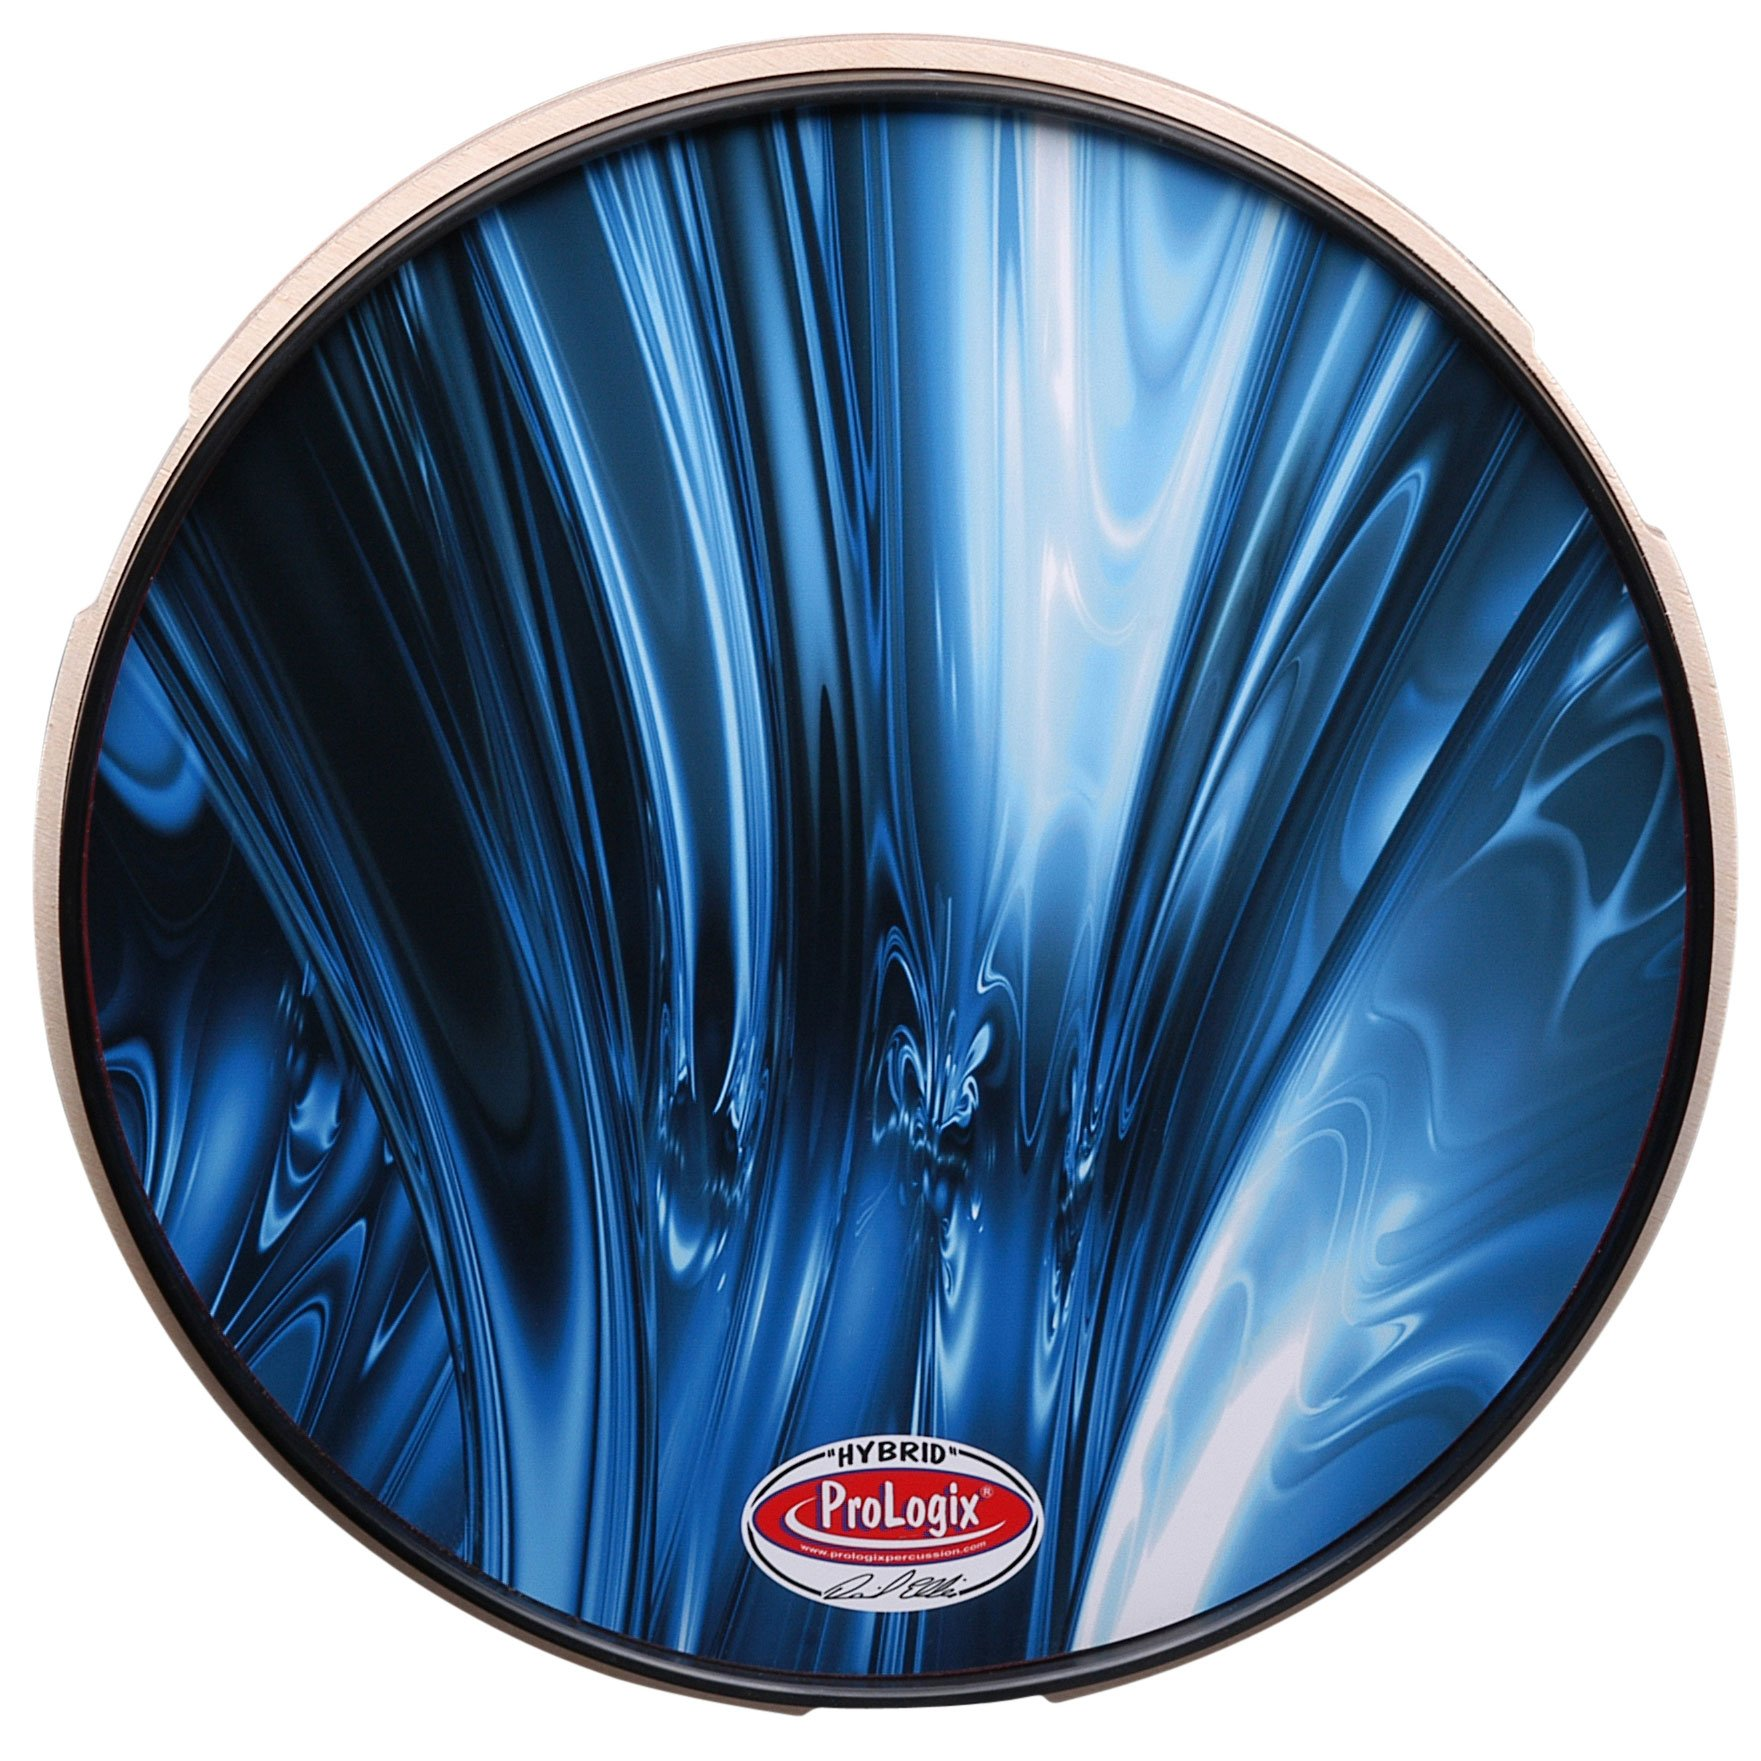 Prologix PXDEPAD 13-Inch David Ellis Hybrid Double Sided Practice Pad